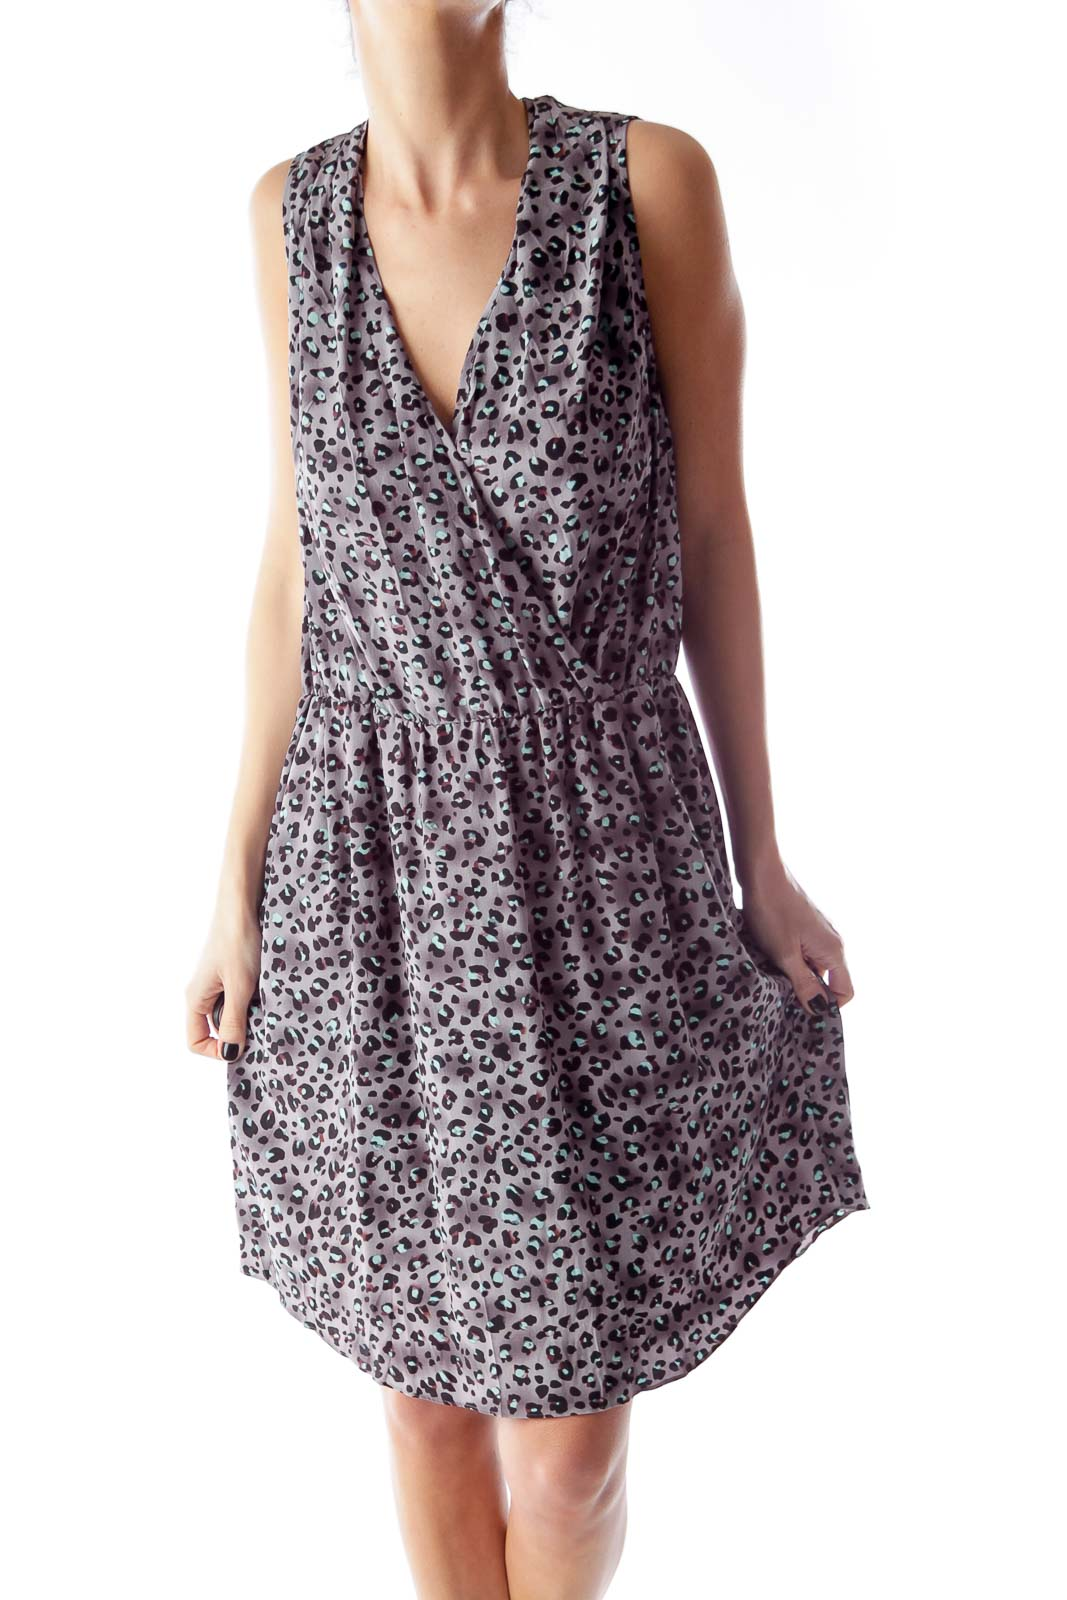 Gray Animal Print Dress